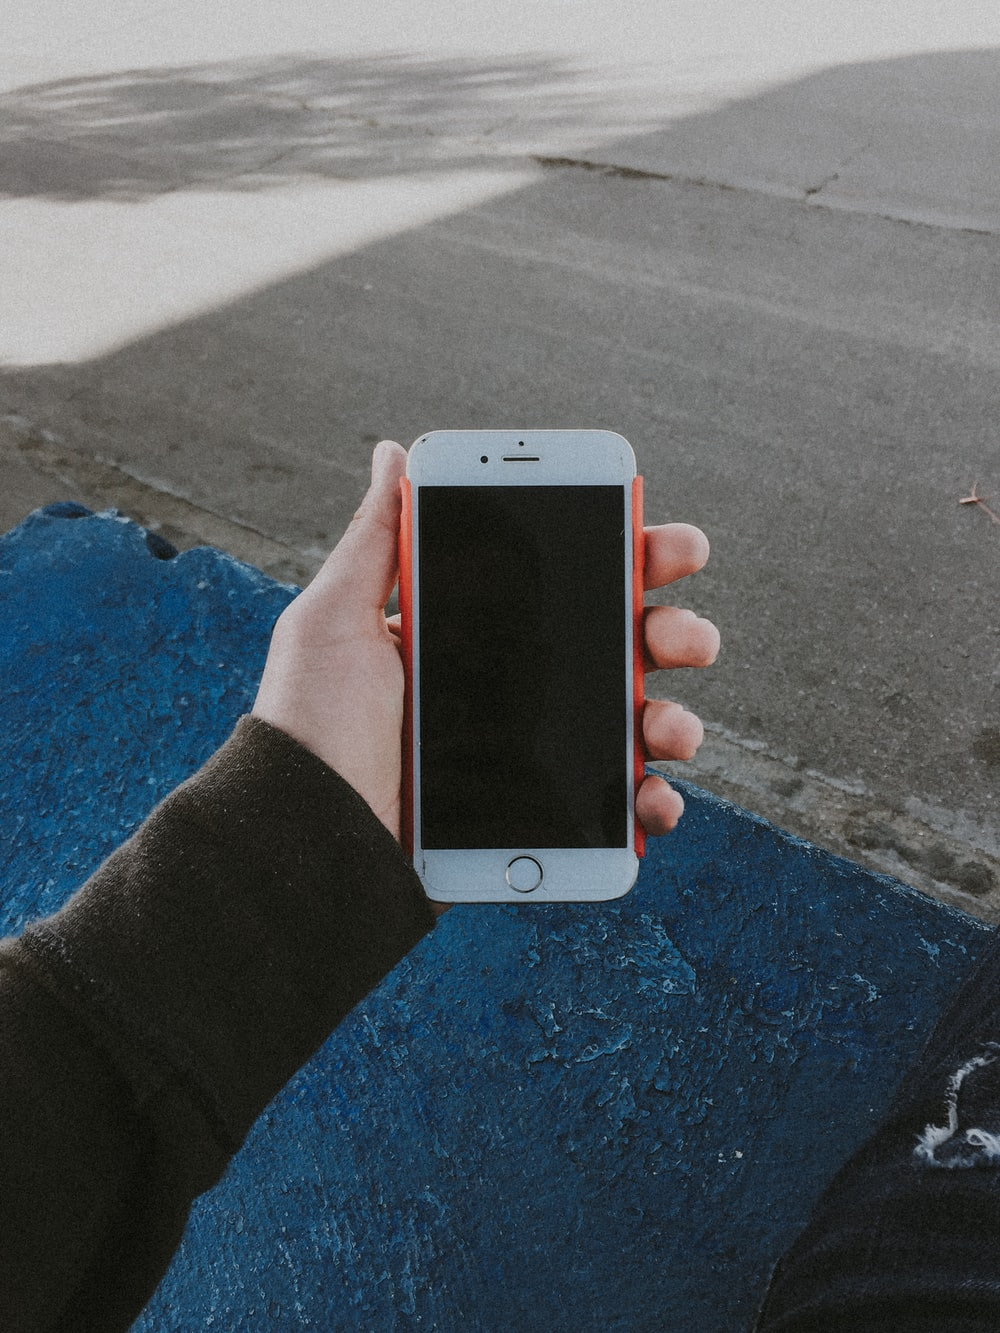 person holding turned-off gold iPhone 6